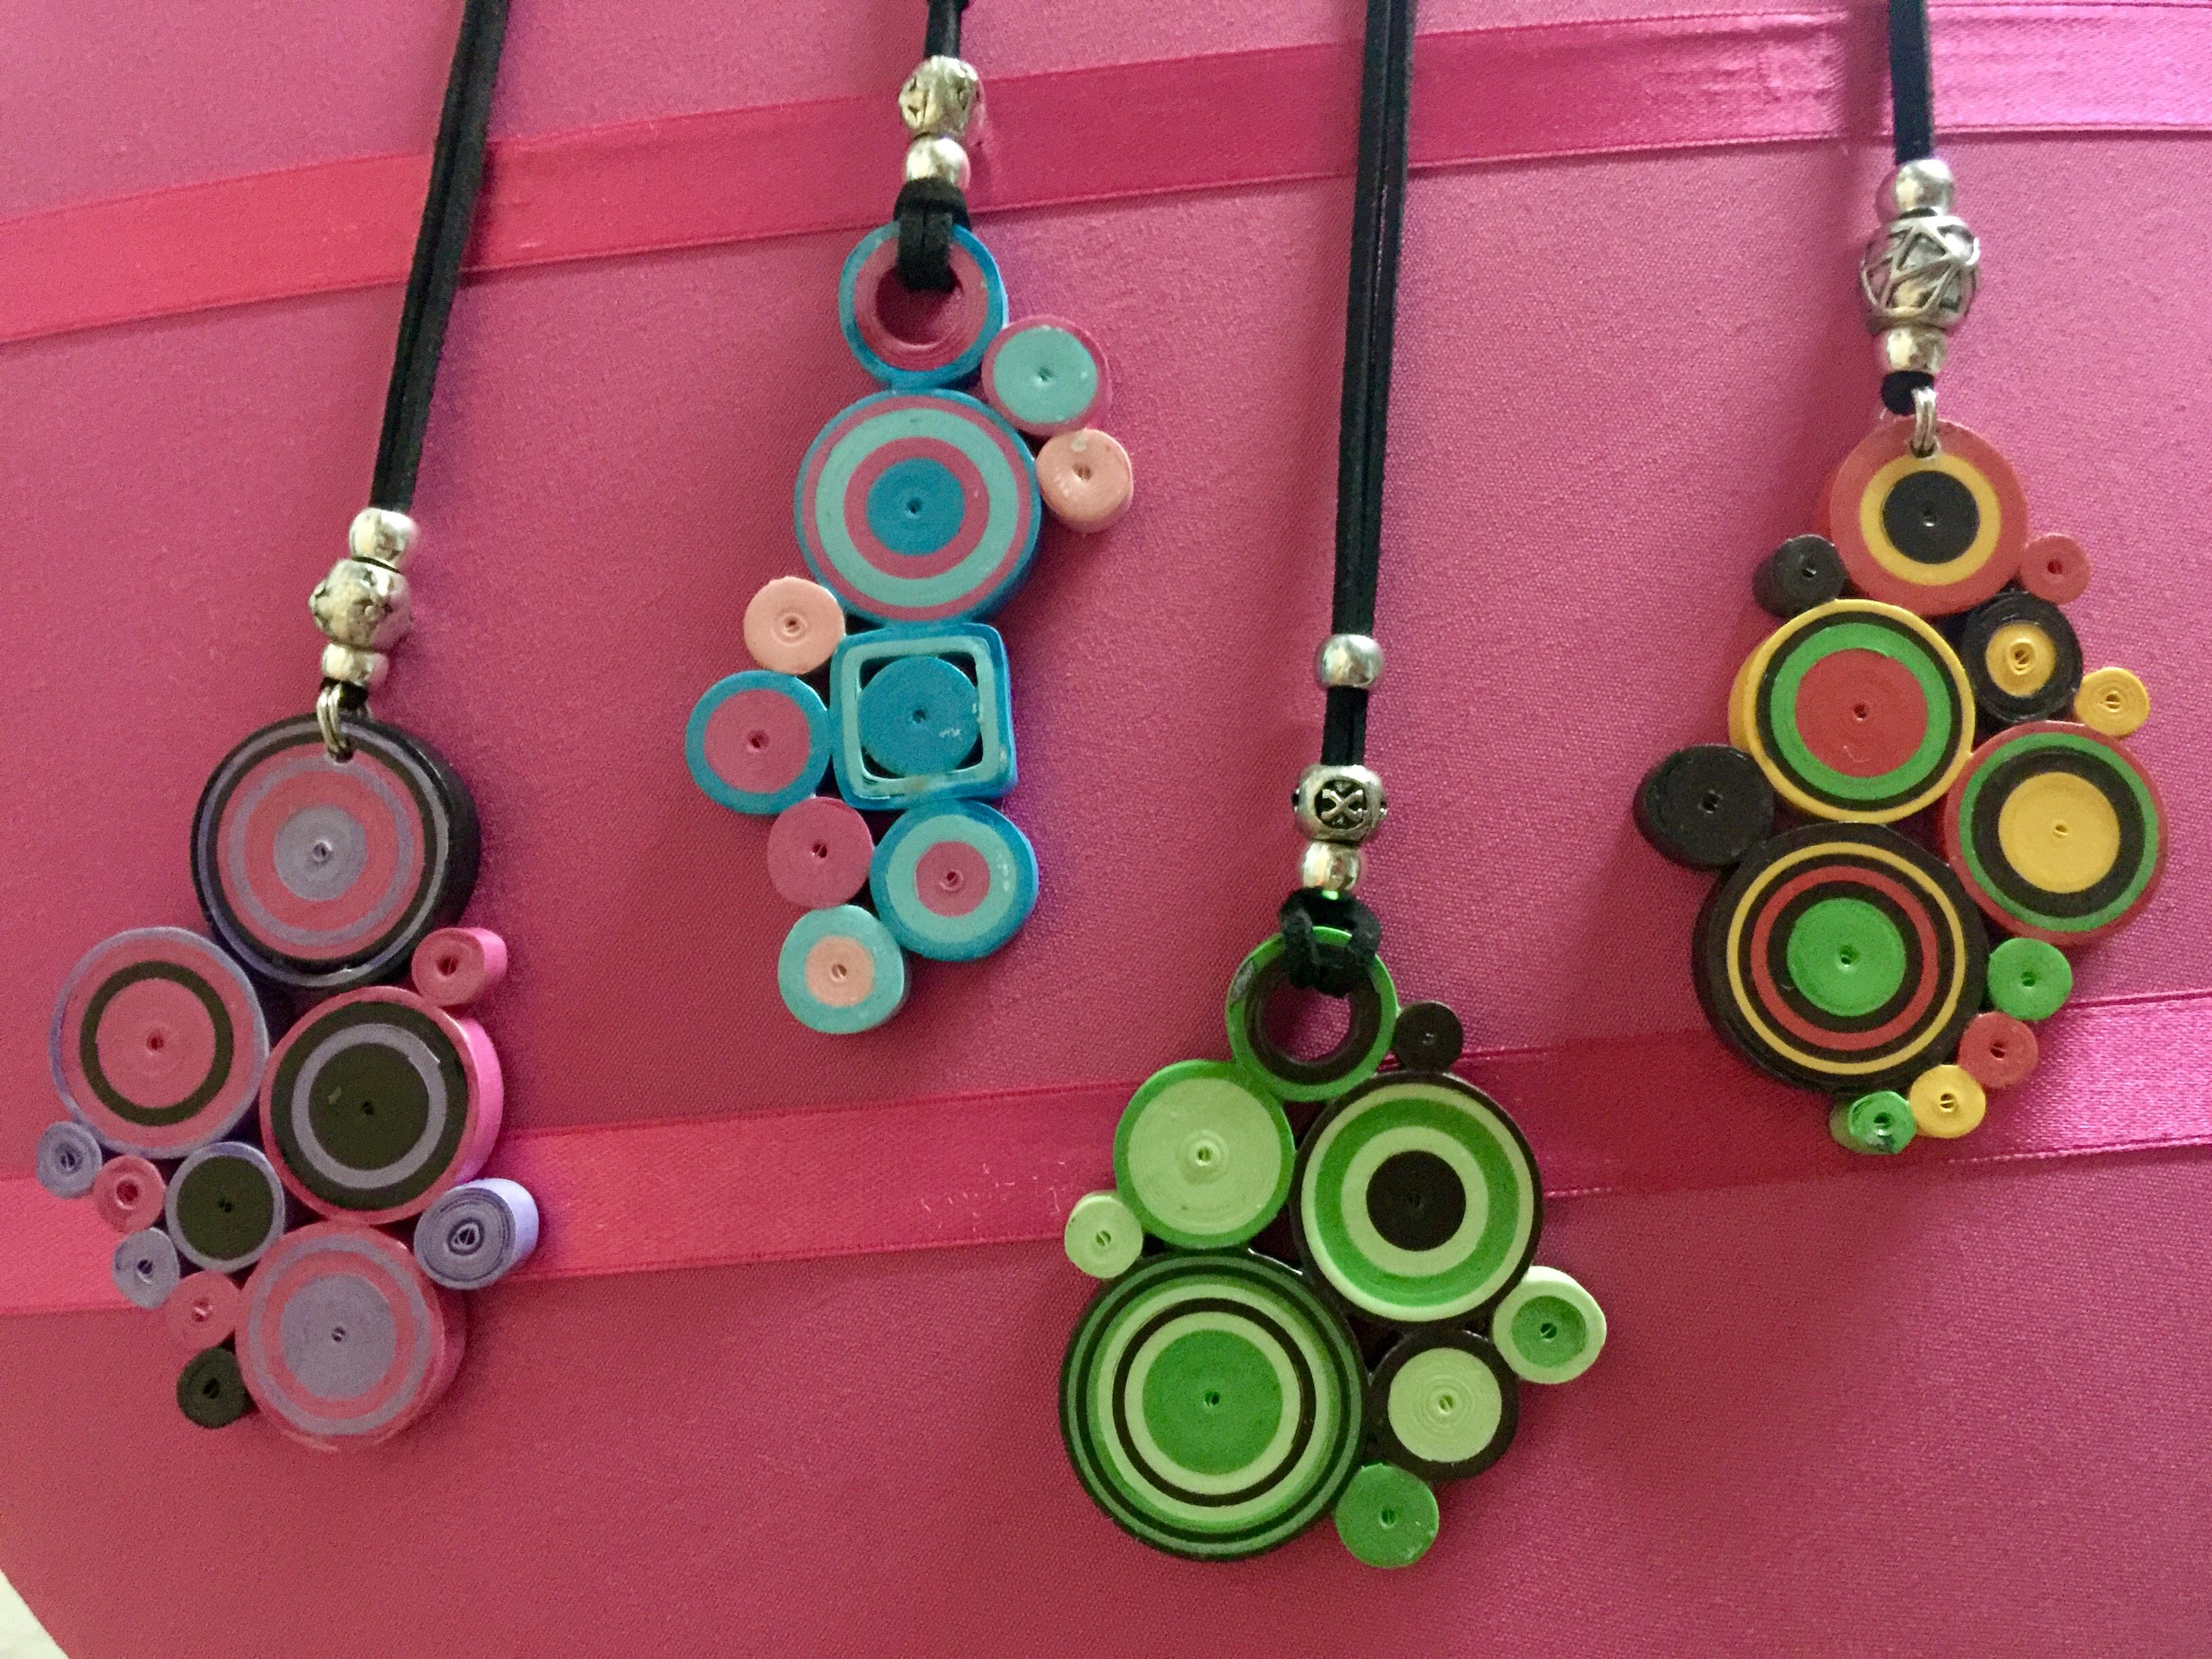 Pin by tracey on clay pinterest quilling jewelry quilling and